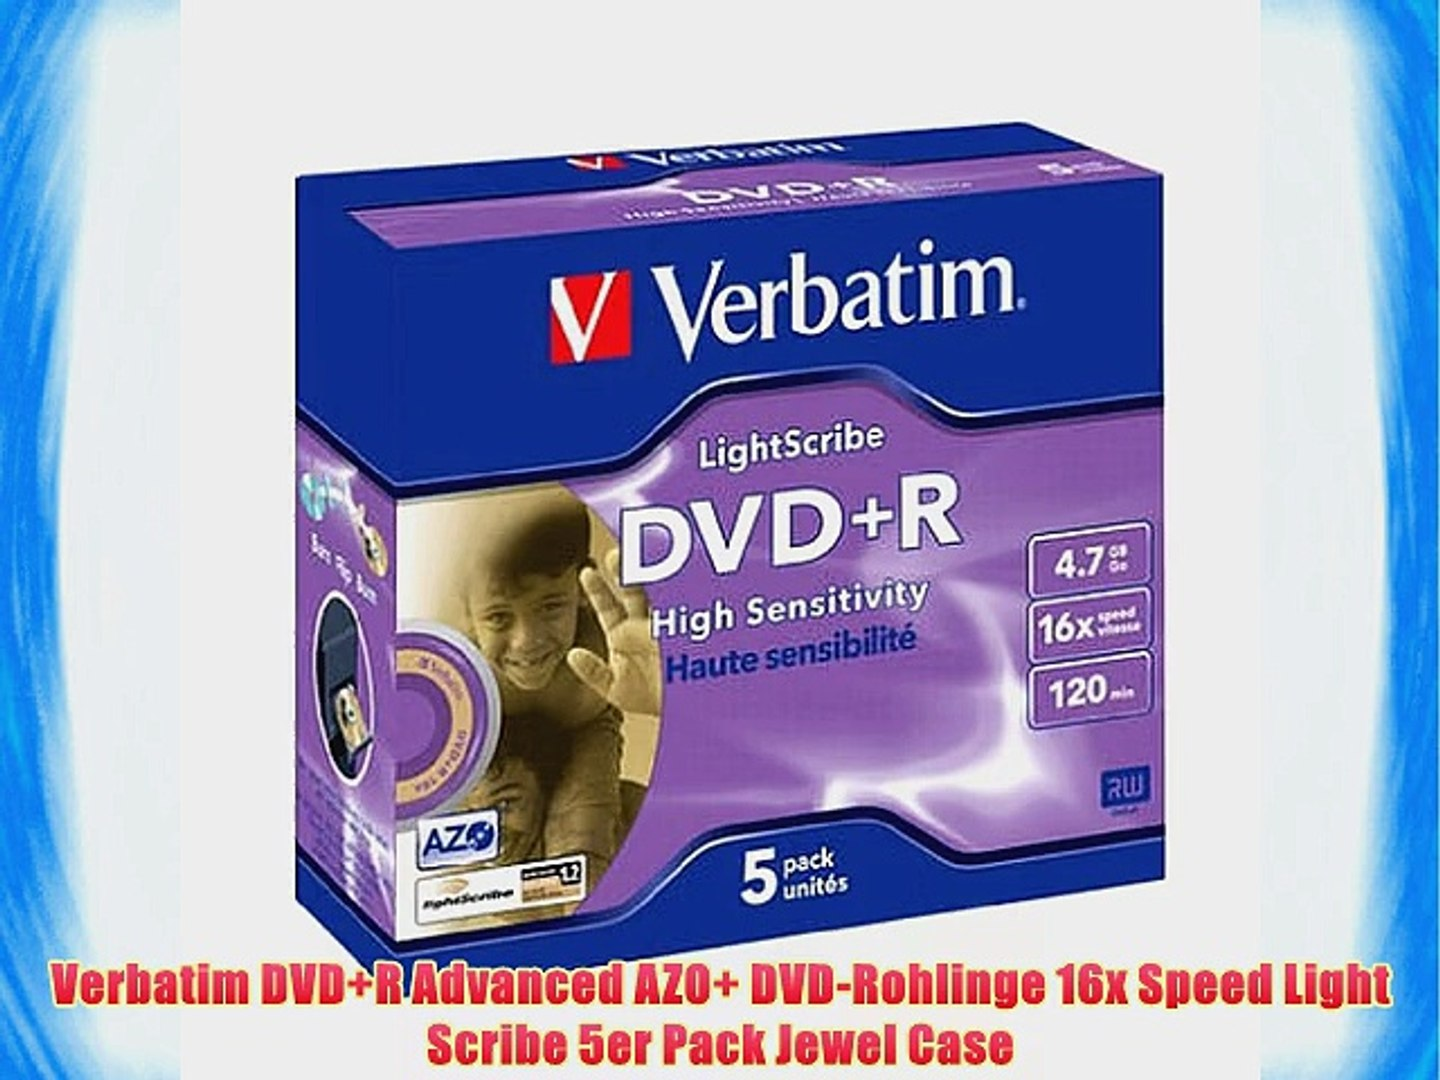 graphic about Printable Dvd Rohlinge identify Verbatim DVD R Highly developed AZO DVD-Rohlinge 16x Rate Gentle Scribe 5er Pack Jewel Circumstance